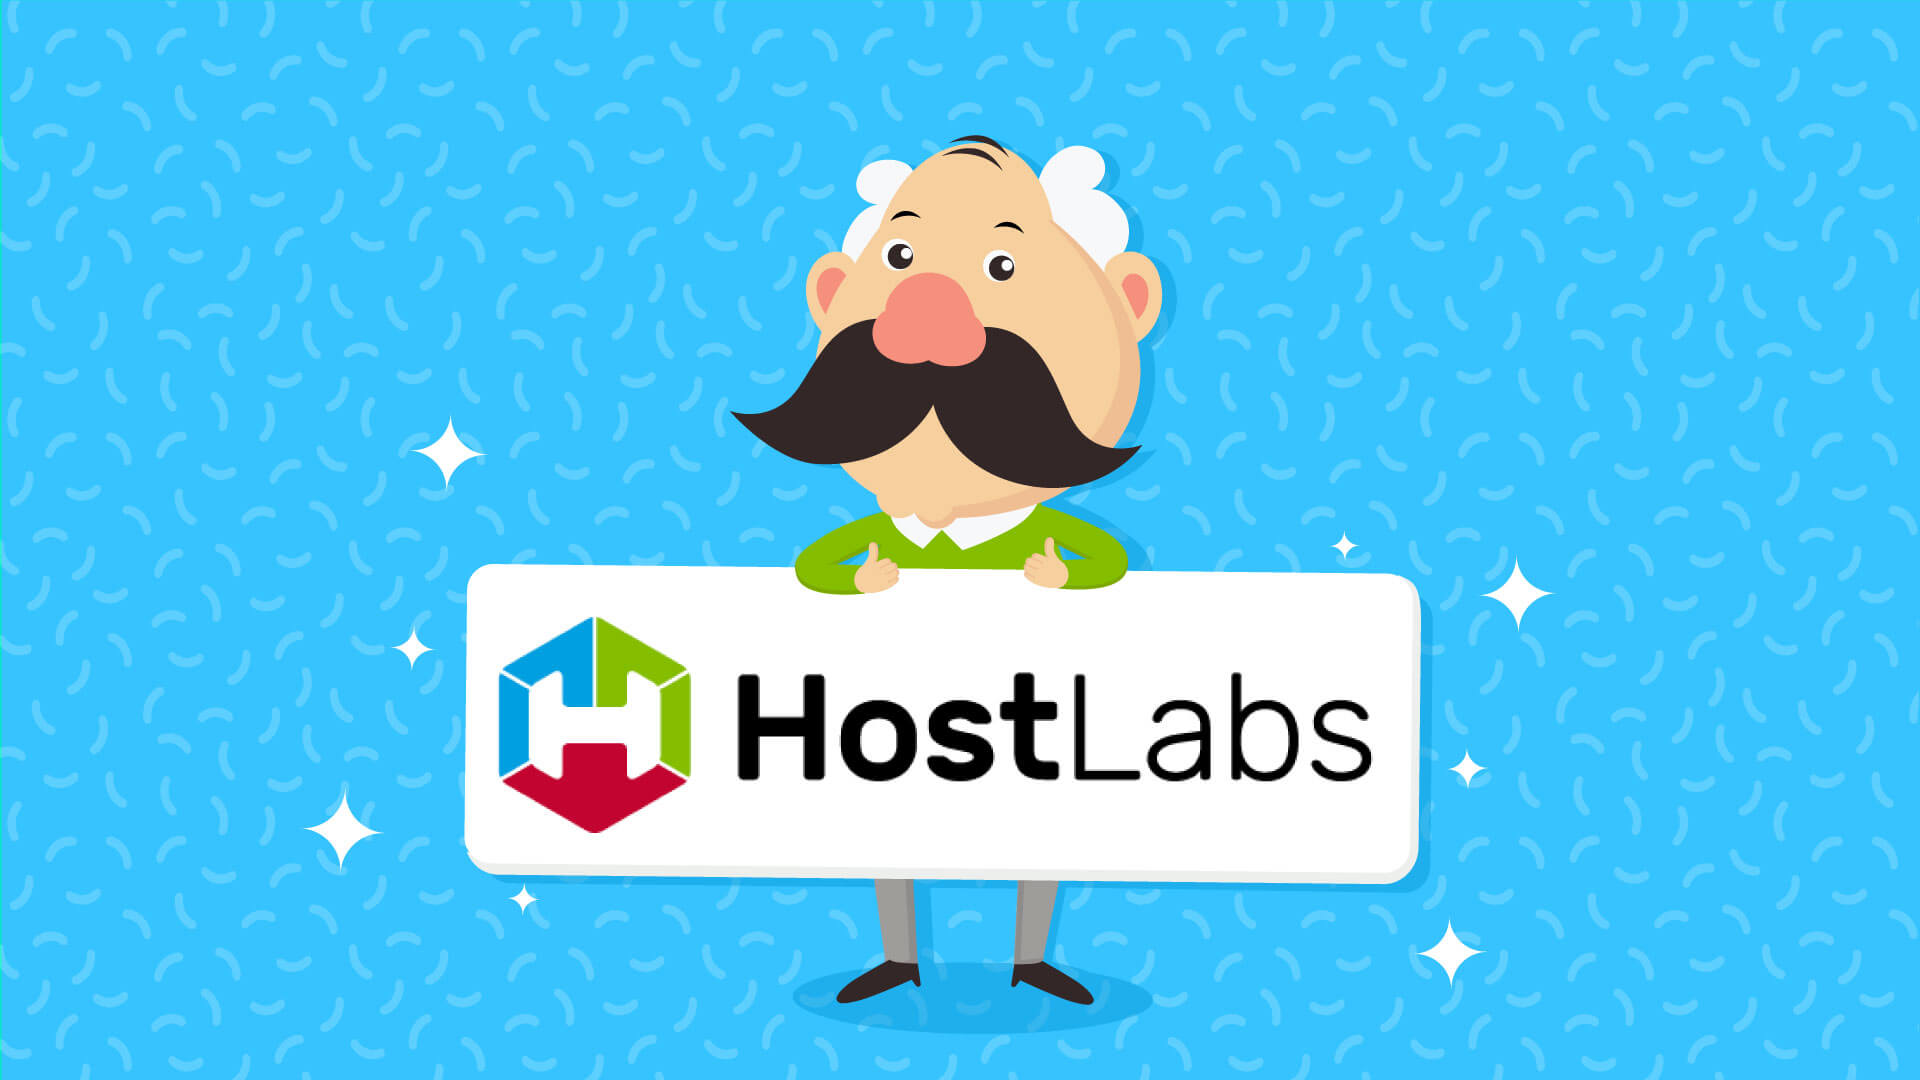 HostLabs is now a part of HostPapa's family